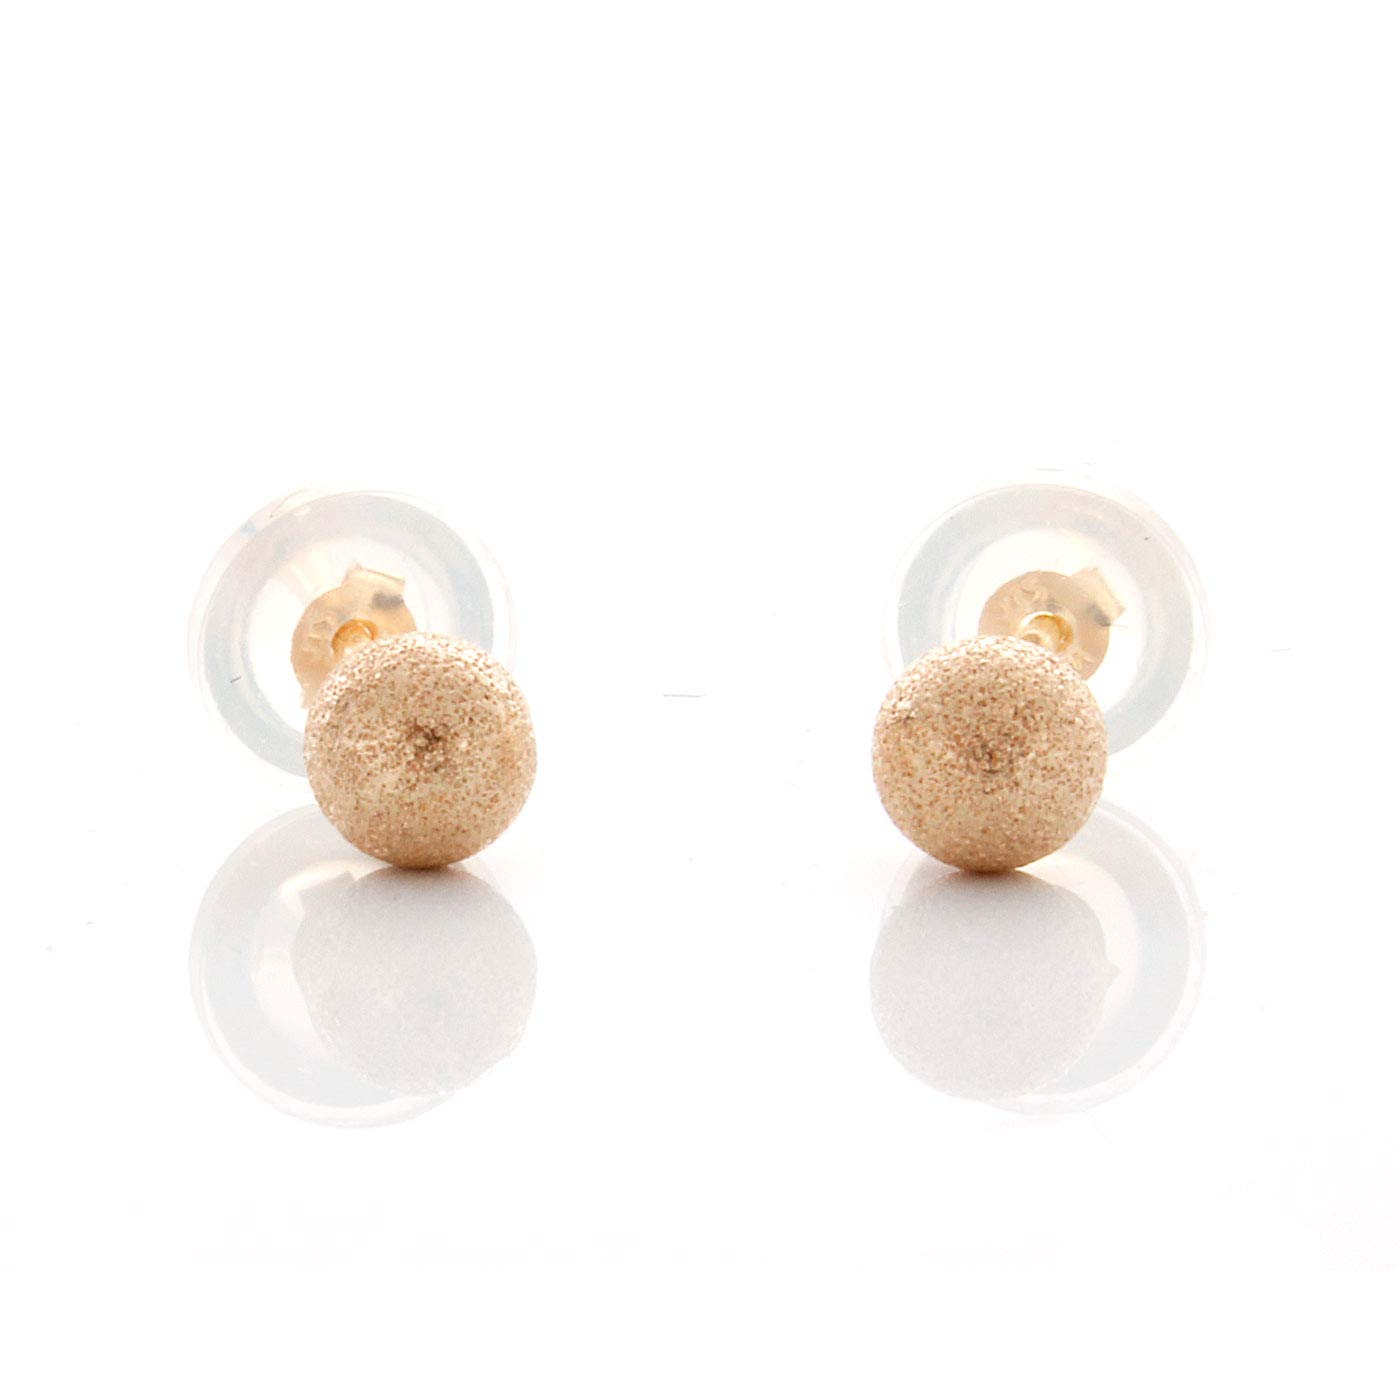 14K Yellow Gold 4mm Laser Cut Ball Stud Earrings For 5 Months to 5 Years old Baby Shine On er600-4mm